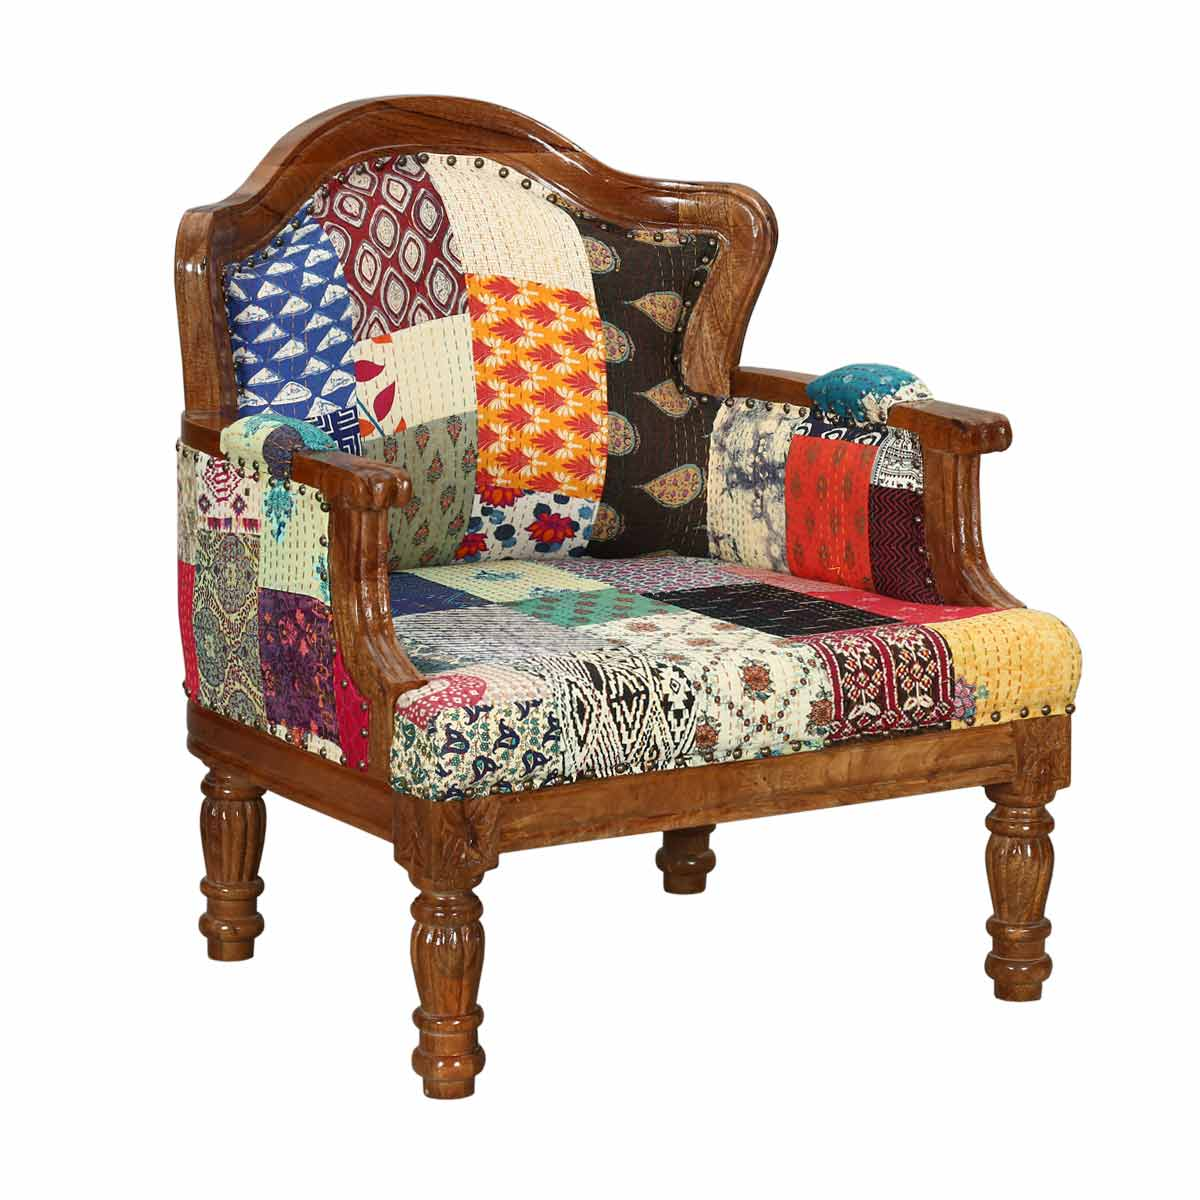 Oversuffed Accent Chair: Federal Mango Wood & Patch Quilt Upholstered Overstuffed